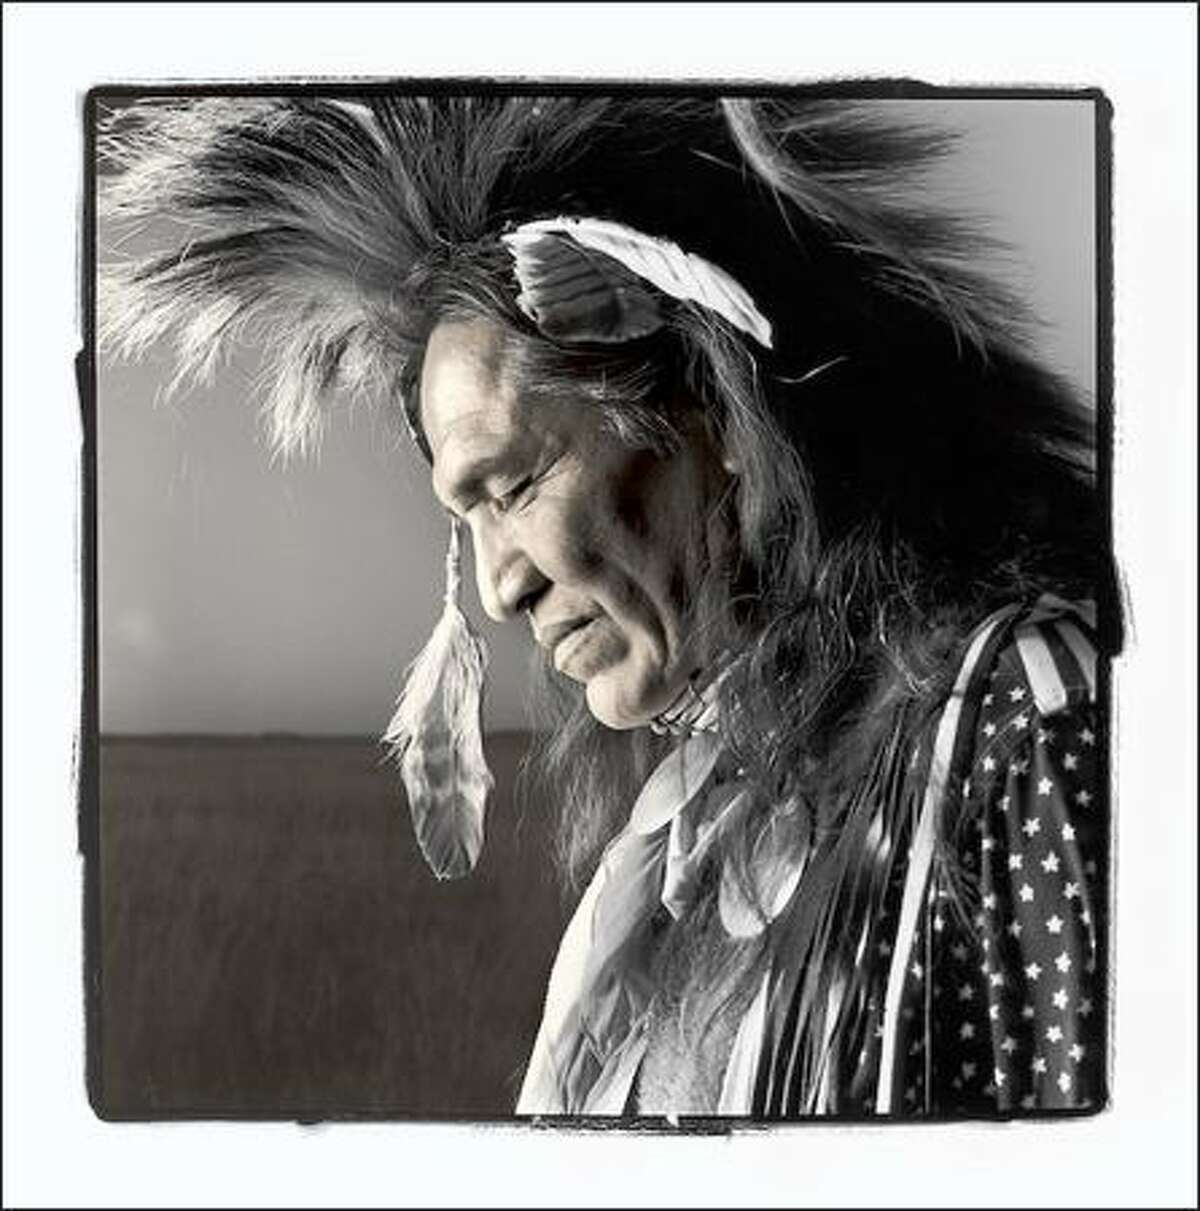 """""""Roy Pete, 44, Navajo, Ft. Washakie, Wyoming, 1998,"""" by Phil Borges"""